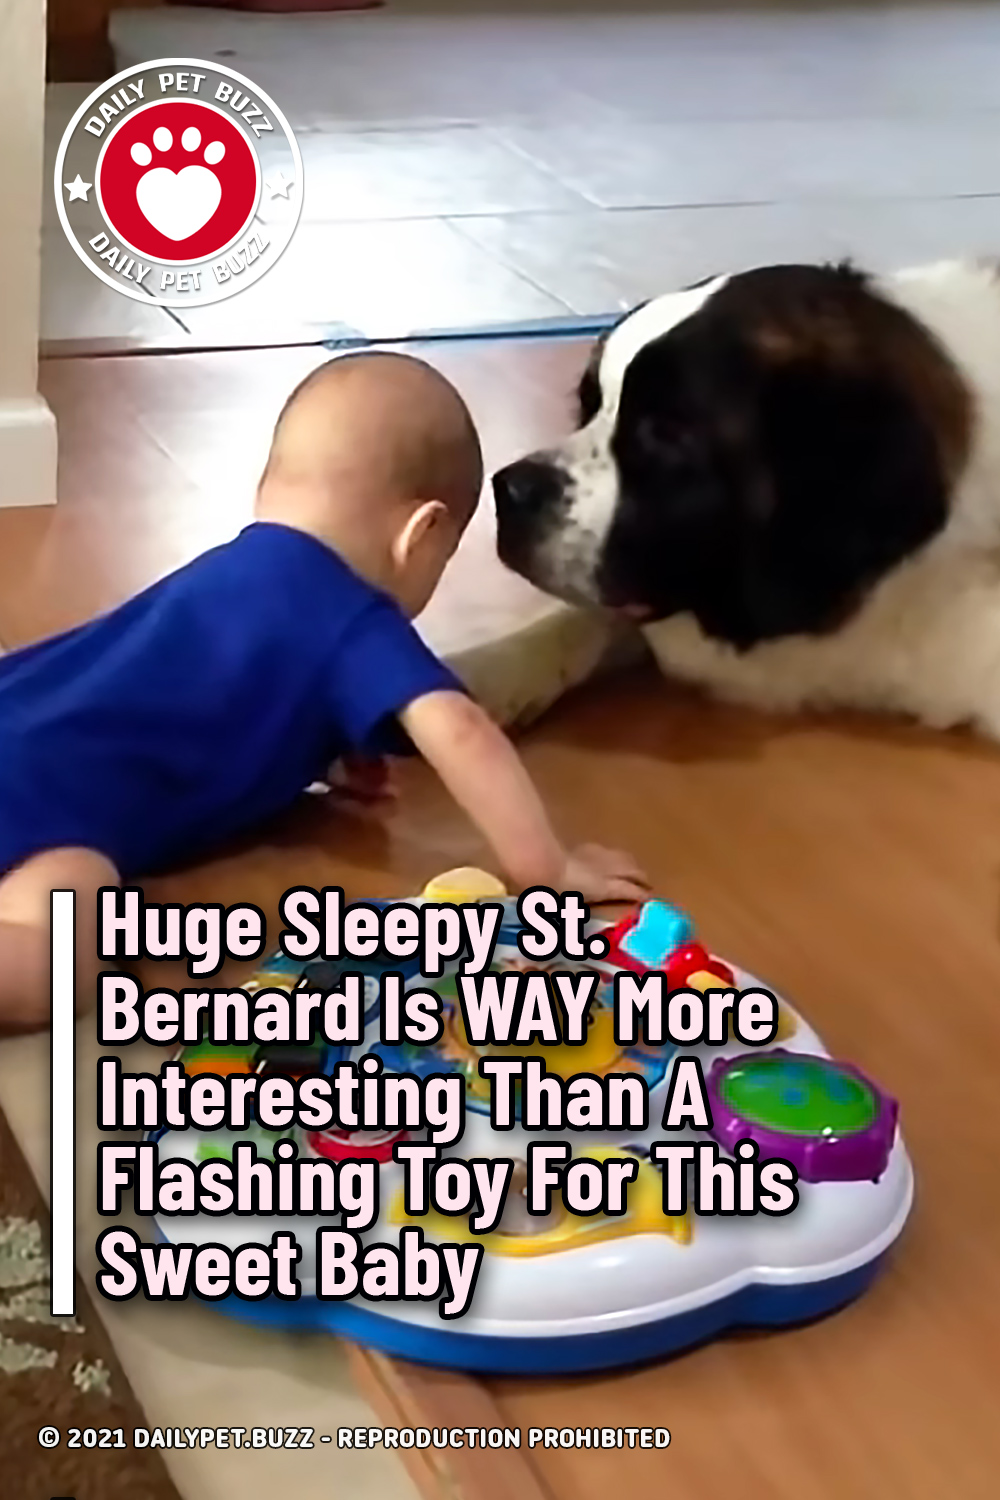 Huge Sleepy St. Bernard Is WAY More Interesting Than A Flashing Toy For This Sweet Baby